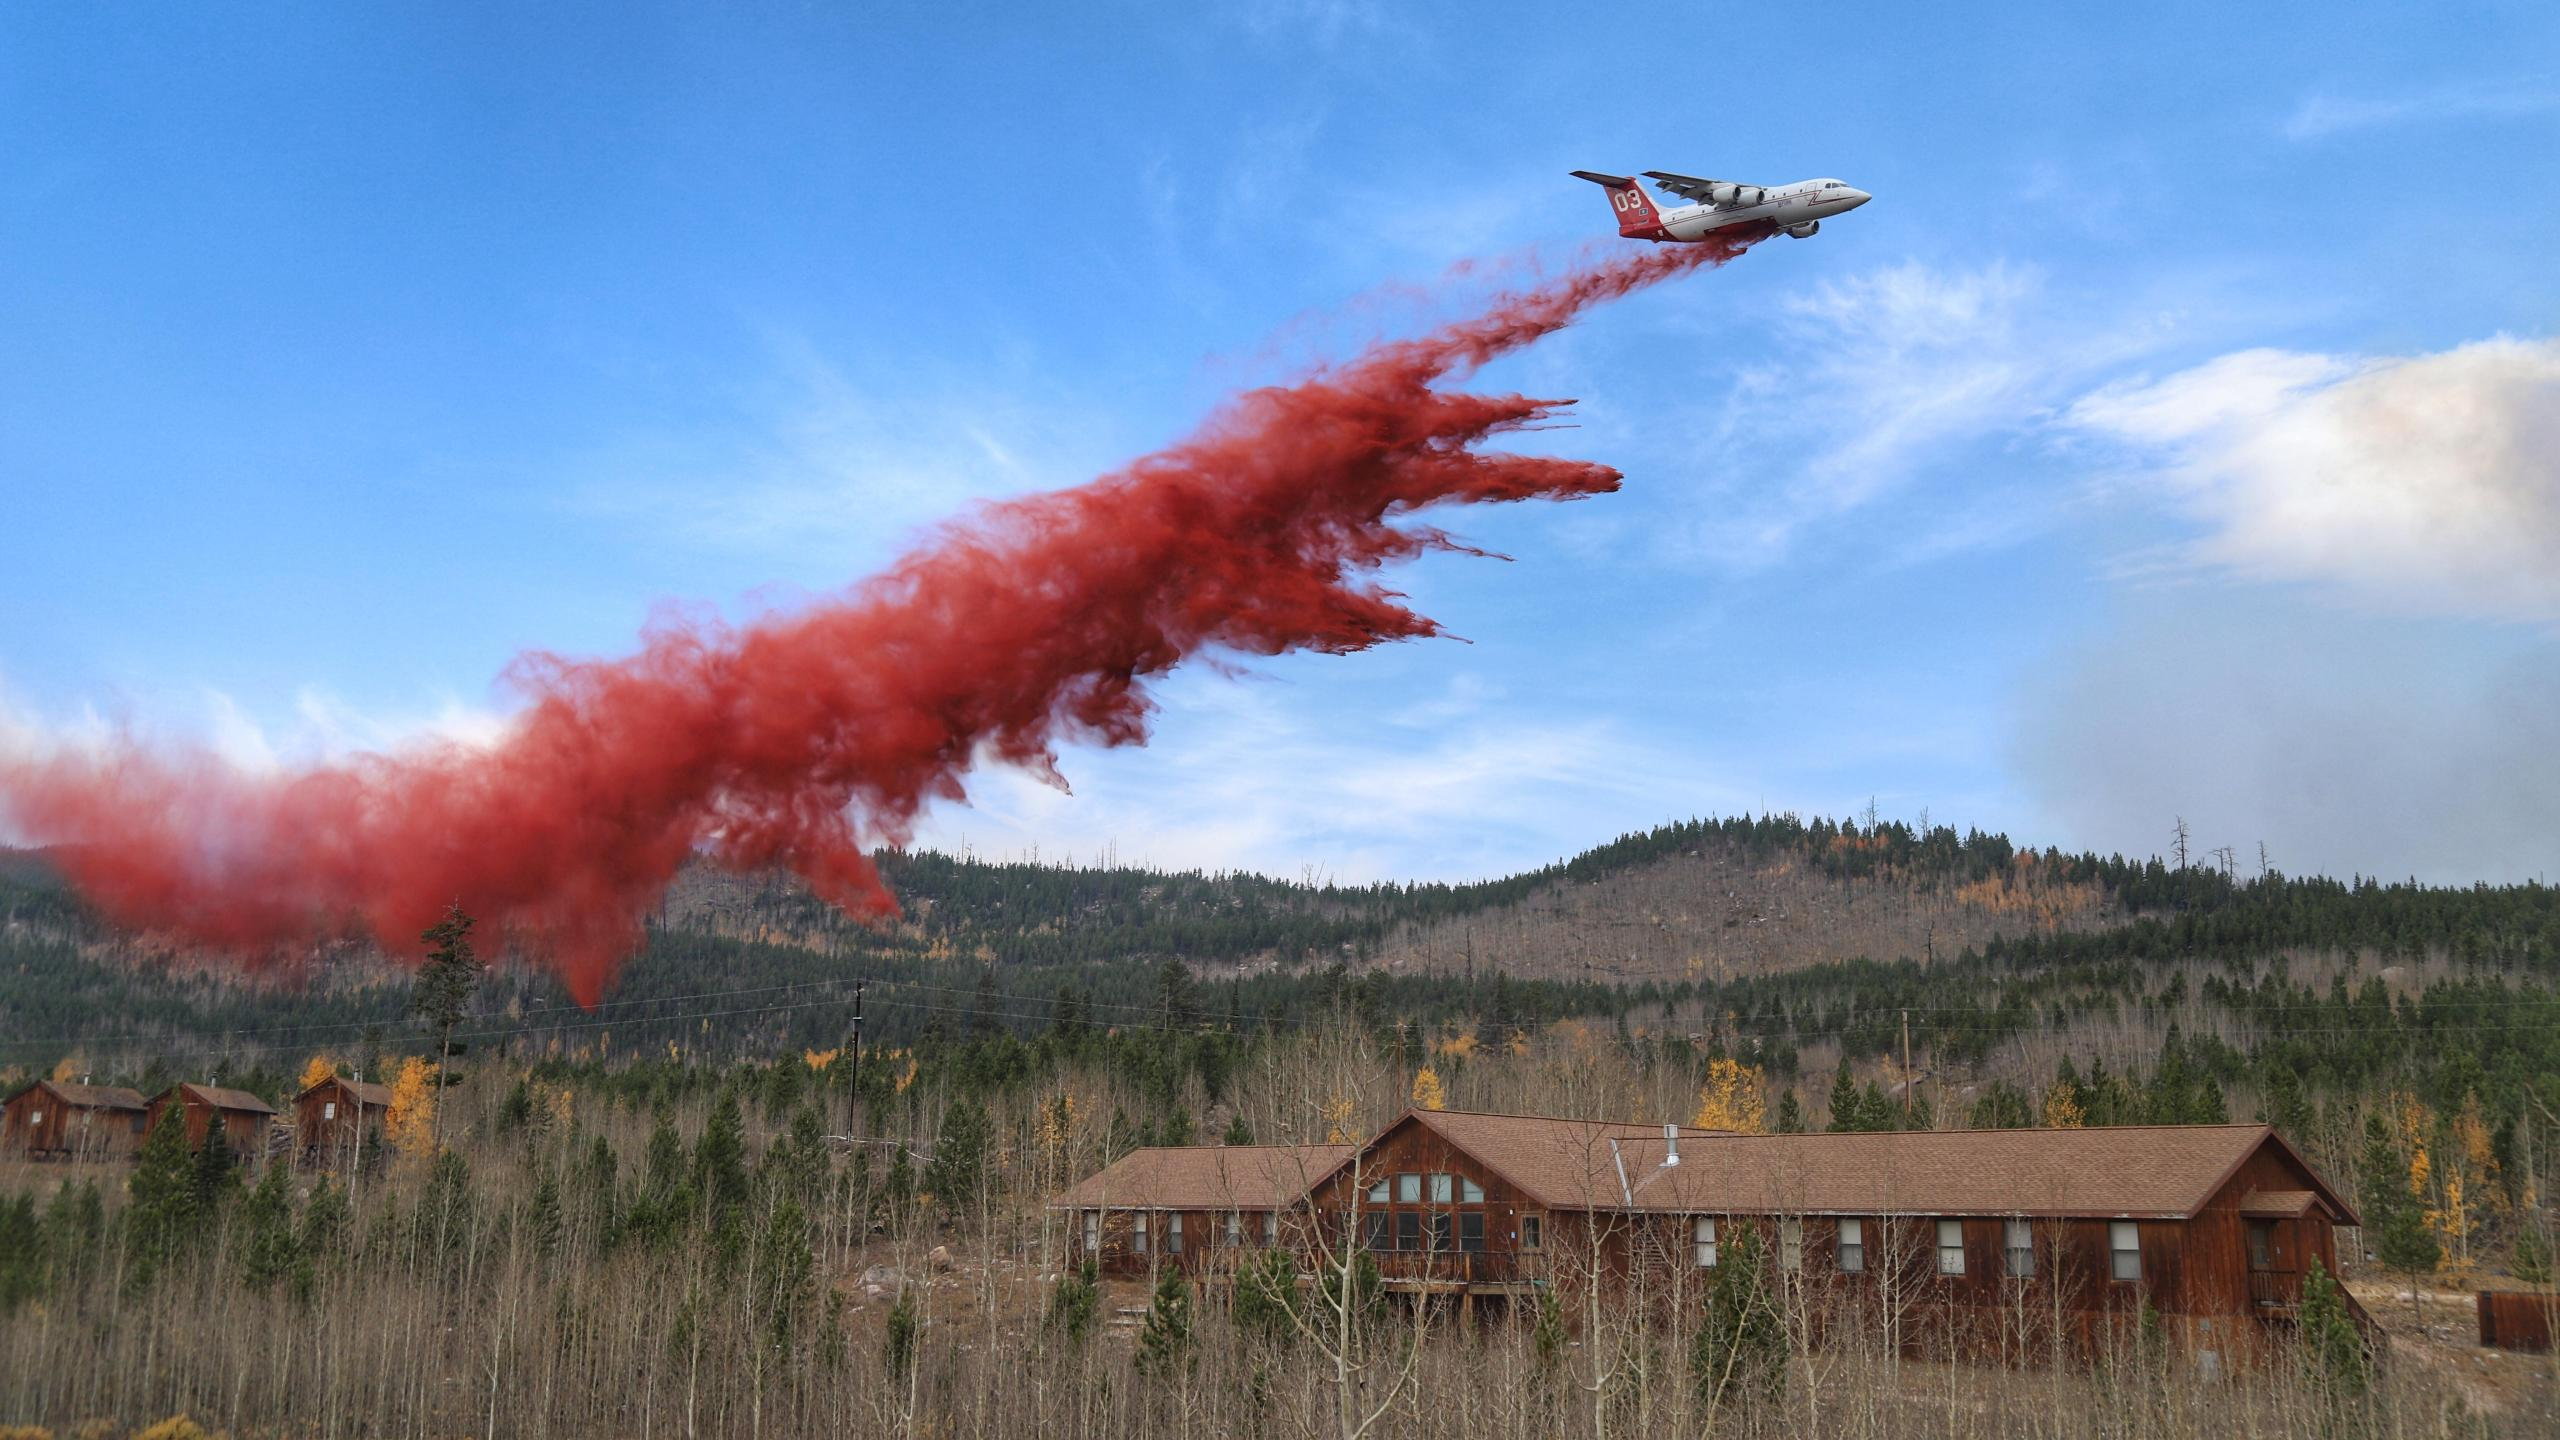 A BAe-146 large air tanker drops fire retandant behind buildings on the Colorado State University Mountain Campus in an effort to protect them from the Cameron Peak Fire Saturday, October 10. / Credit: Cameron Peak Fire, photo by NM Engine 964 Crew